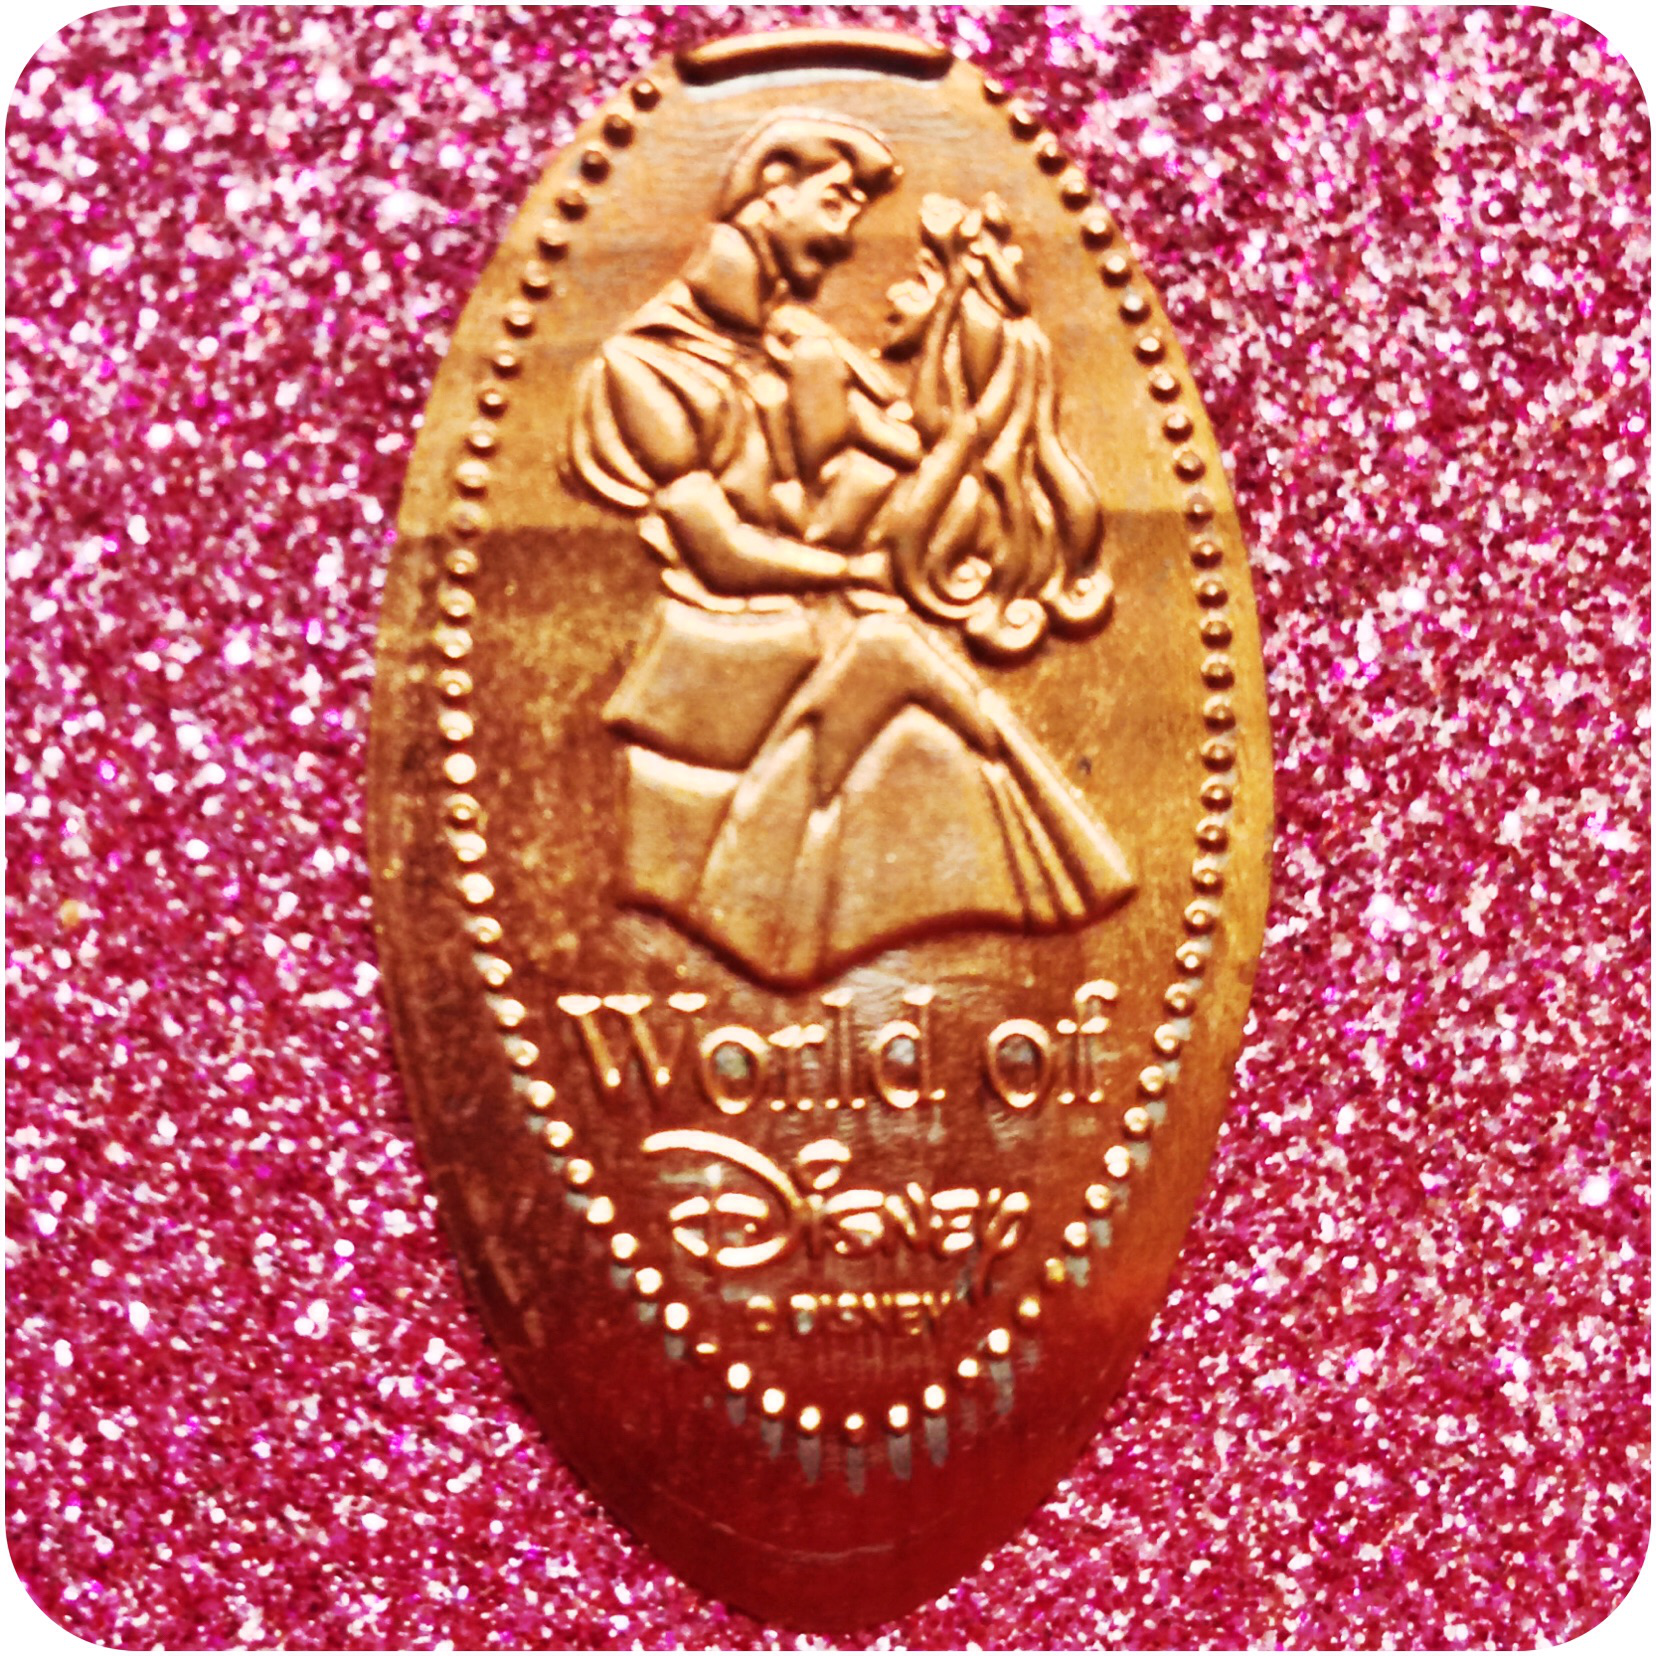 Sleeping Beauty/Princess Aurora in Prince Phillip's Arms World of Disney DTD0063